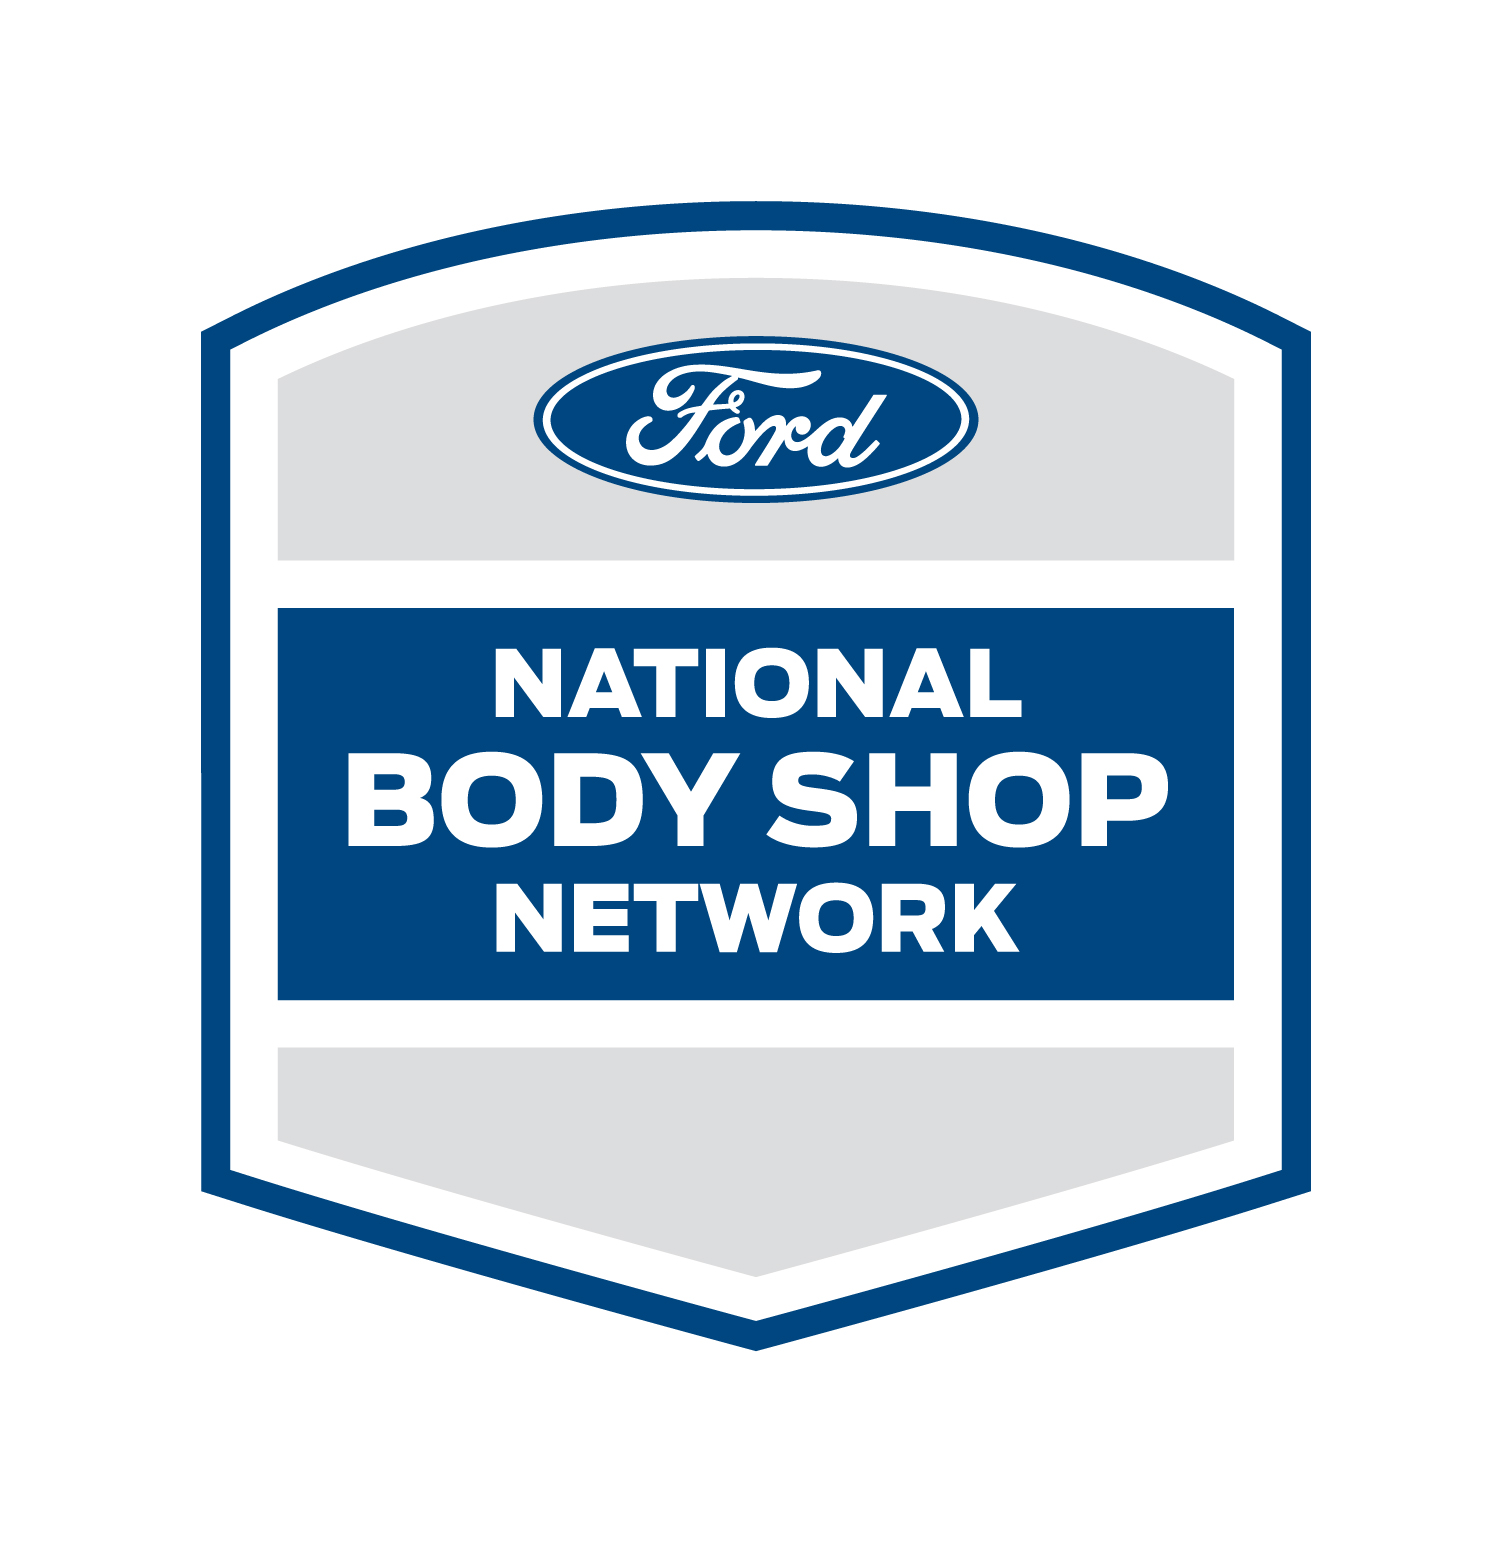 National Body Shop Network: Ford Recognized